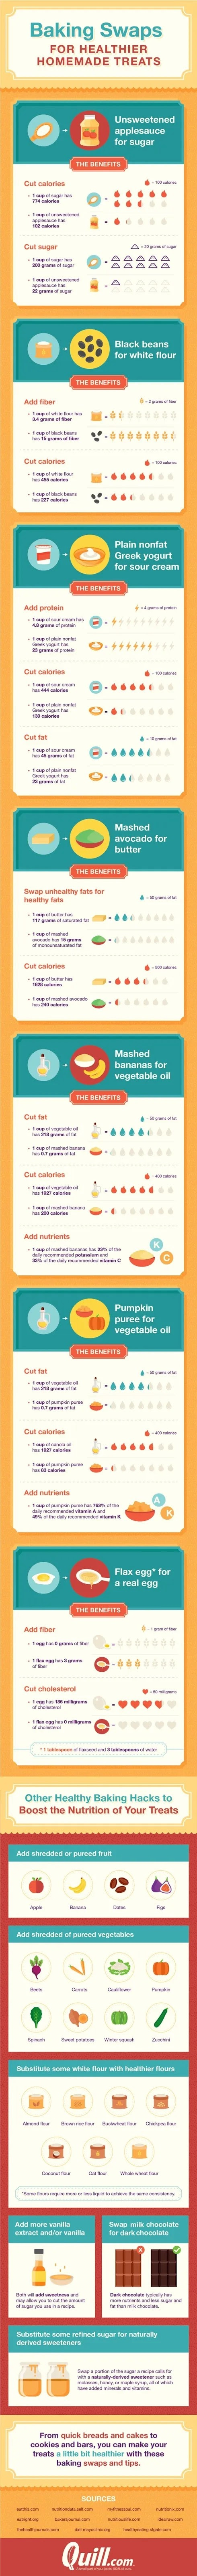 Healthy Baking #infographic